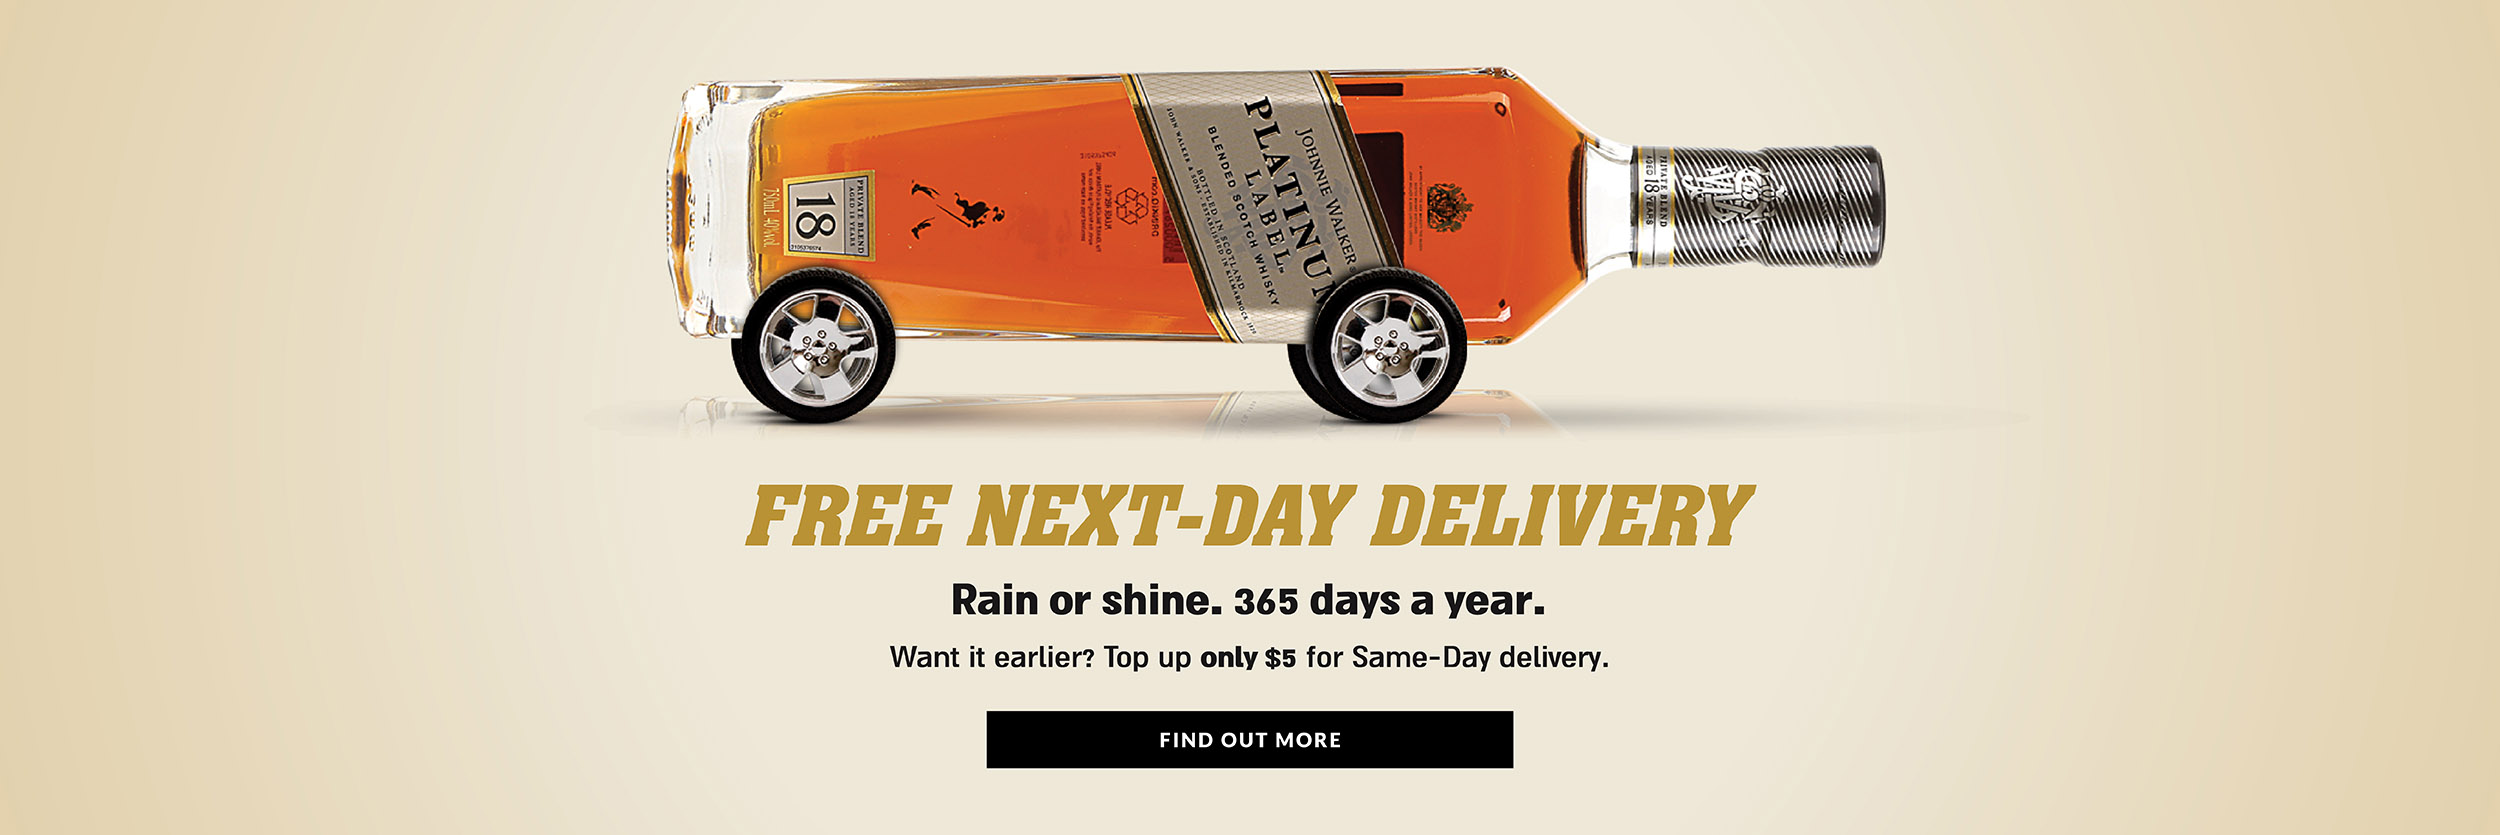 Free next day delivery large banner